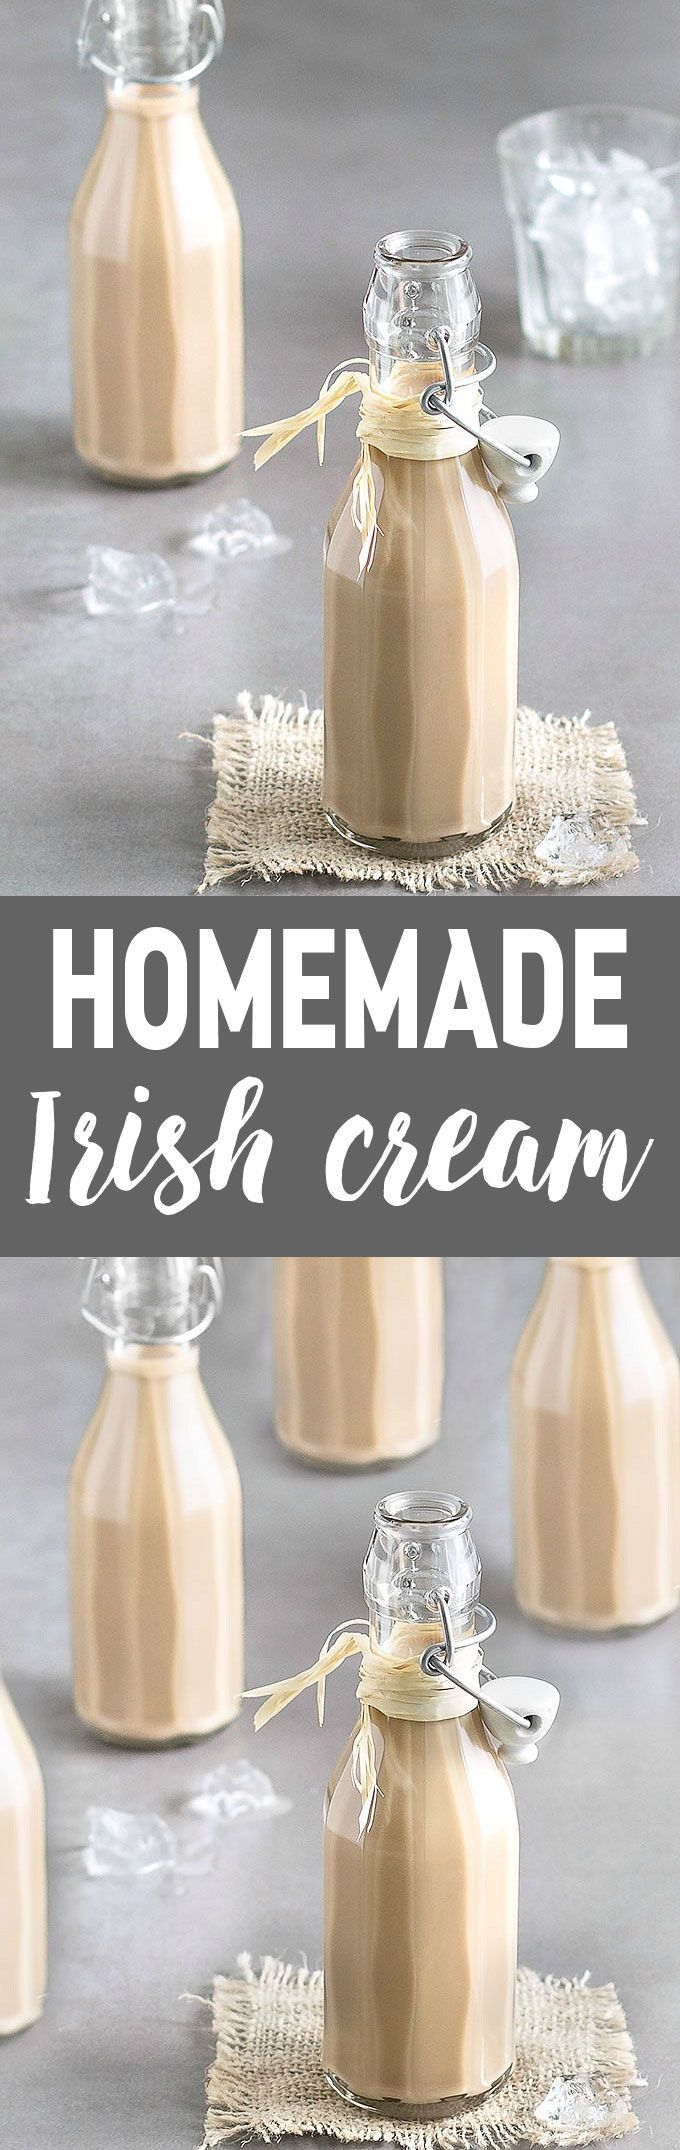 A rich, creamy and velvety smooth Baileys Irish Cream. This simple and quick recipe is ready in less than 1 minute!